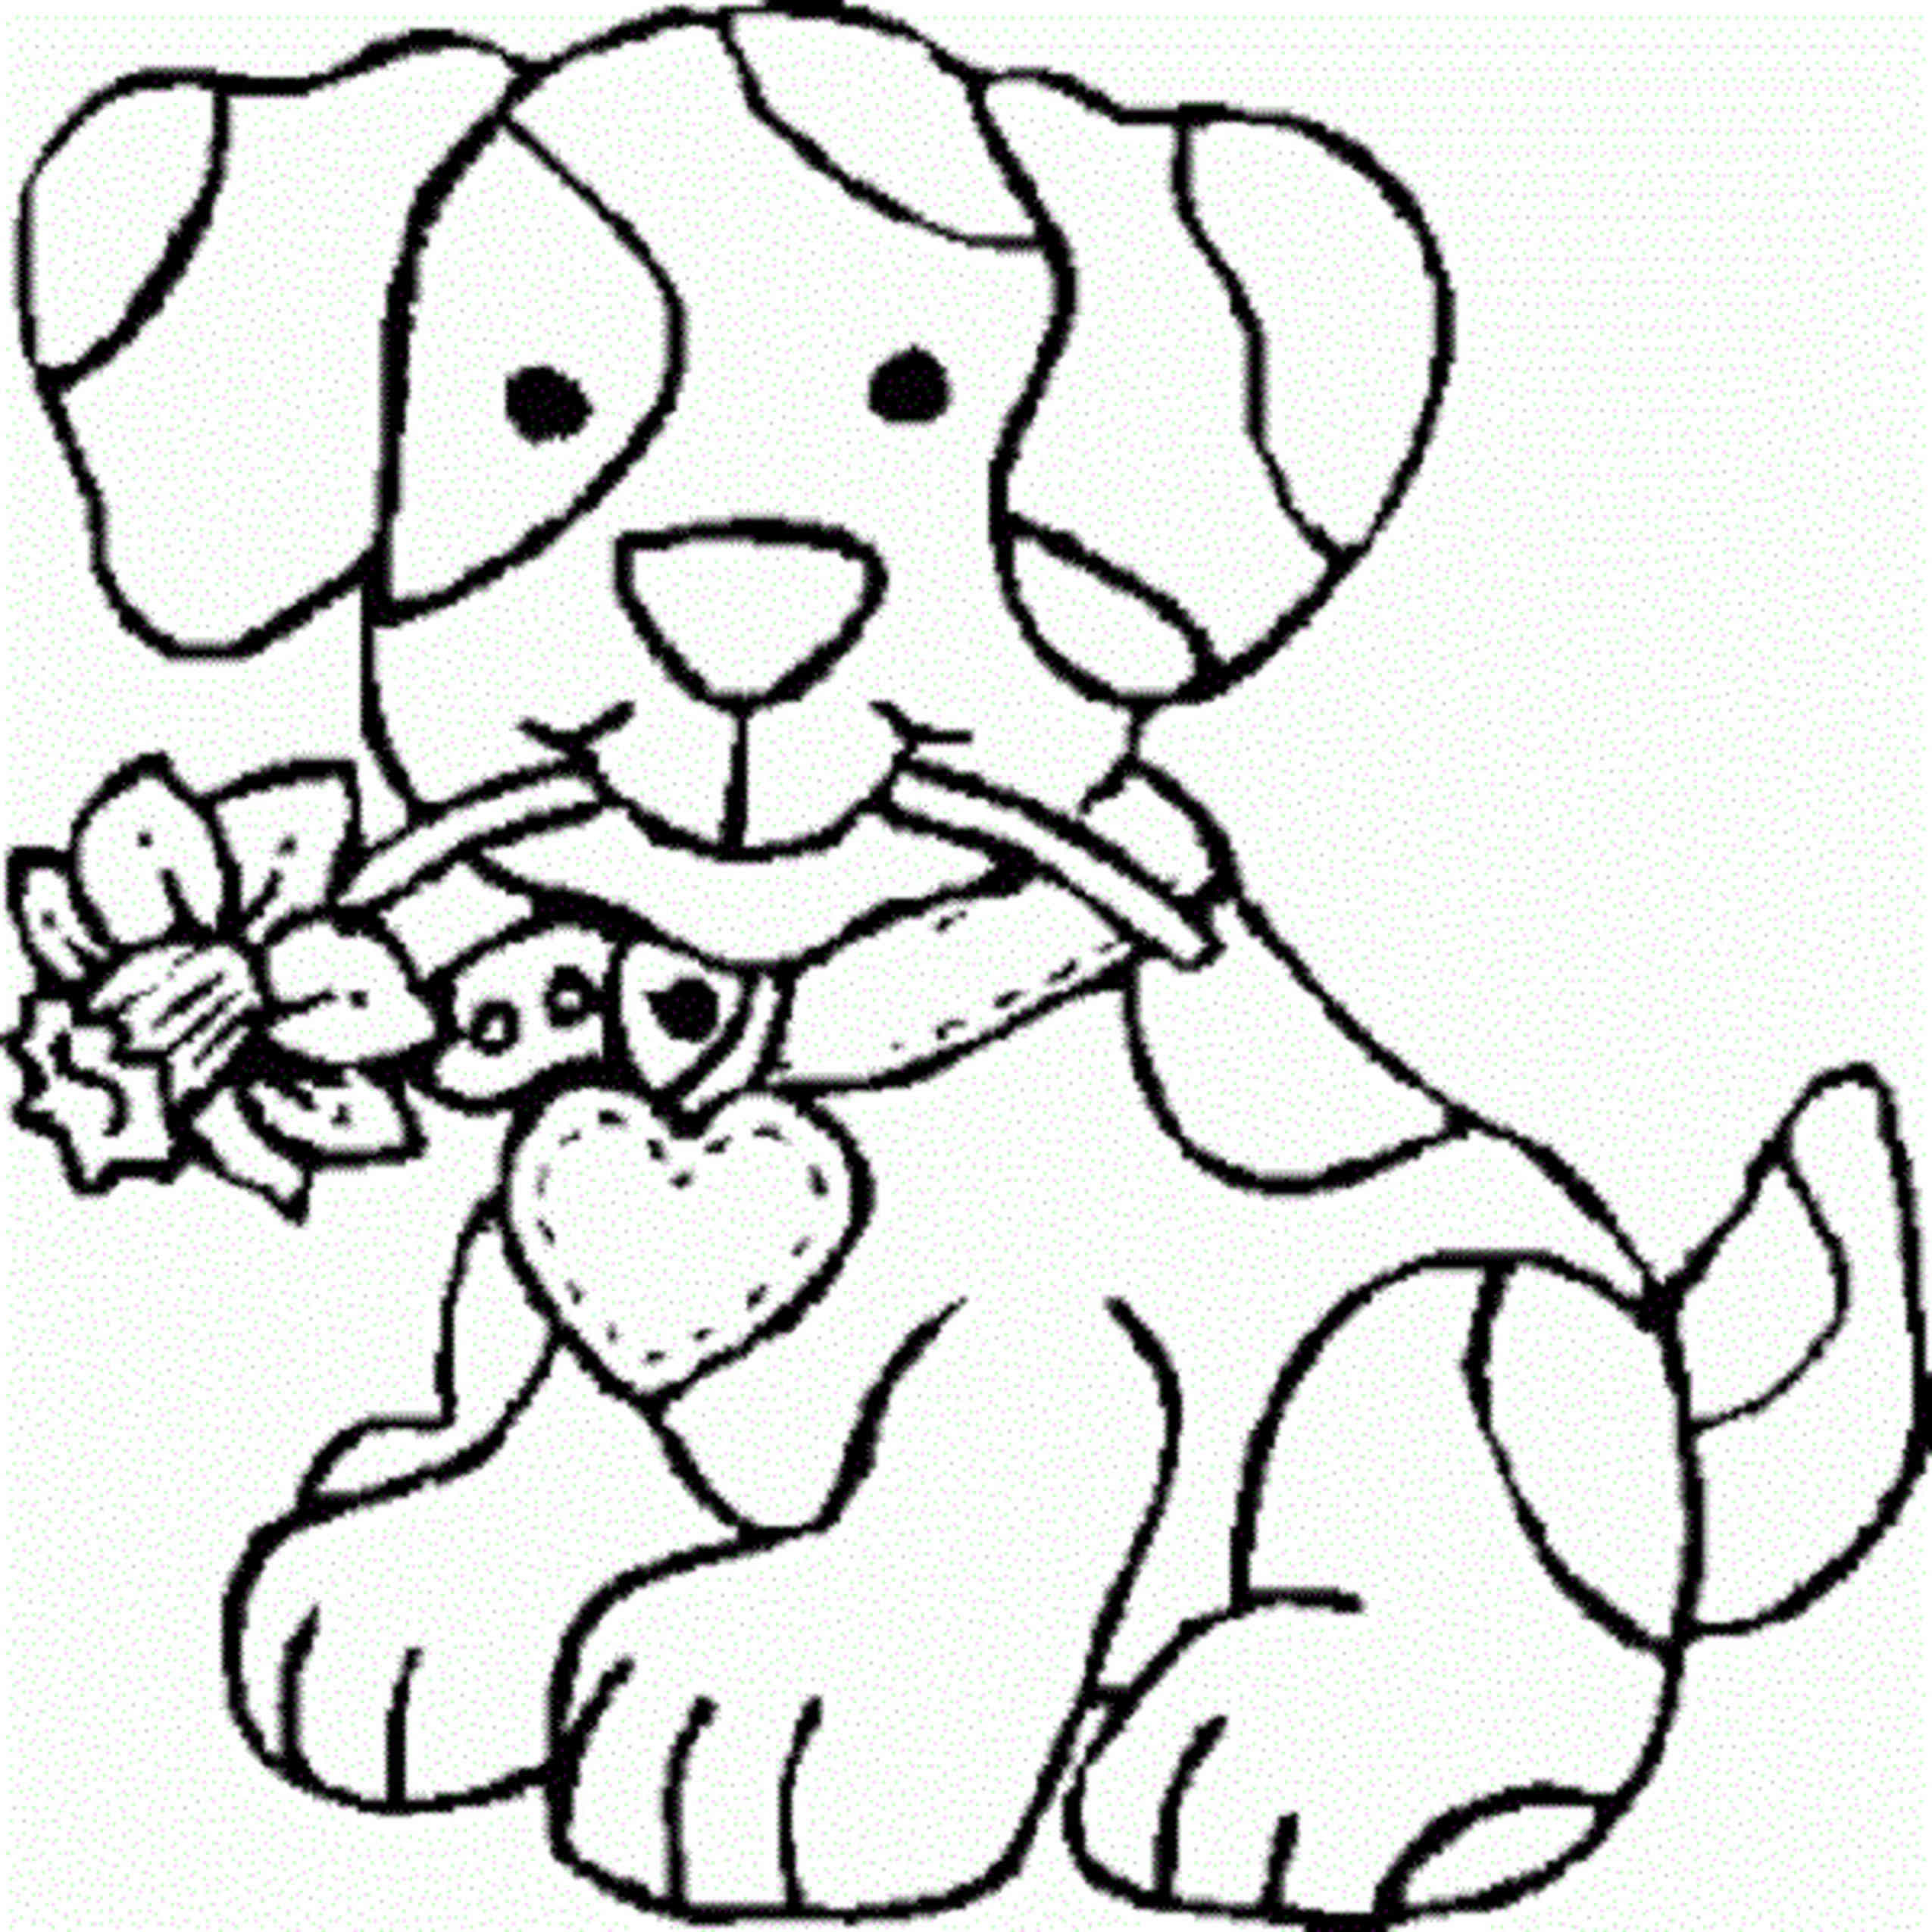 Coloring Pages For 10 Year Old Girls Coloring Pages For Teens Free Download Best Coloring Pages For